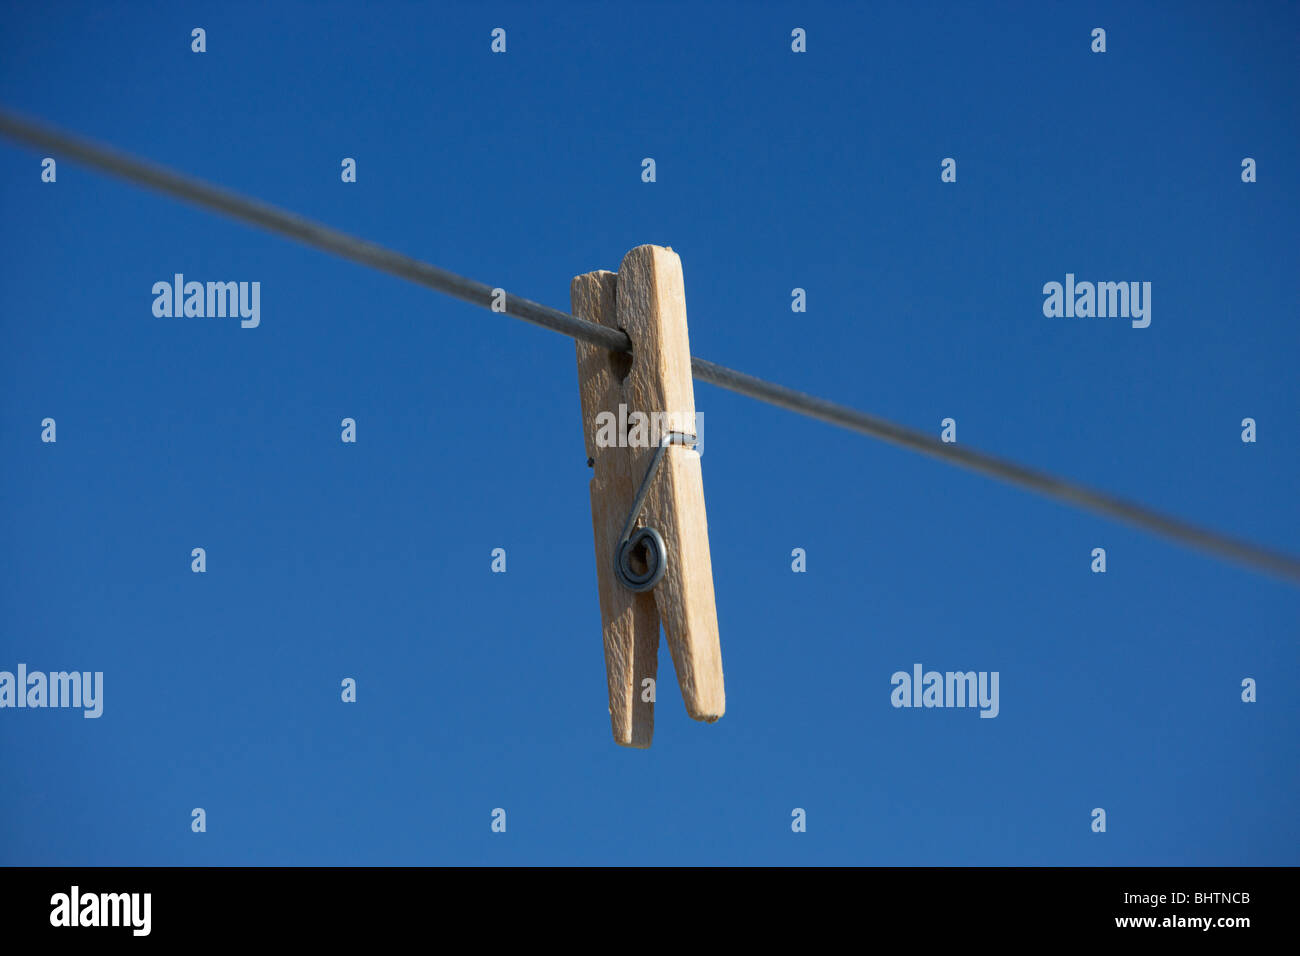 single clothes peg hanging on a washing line against a bright blue sky - Stock Image